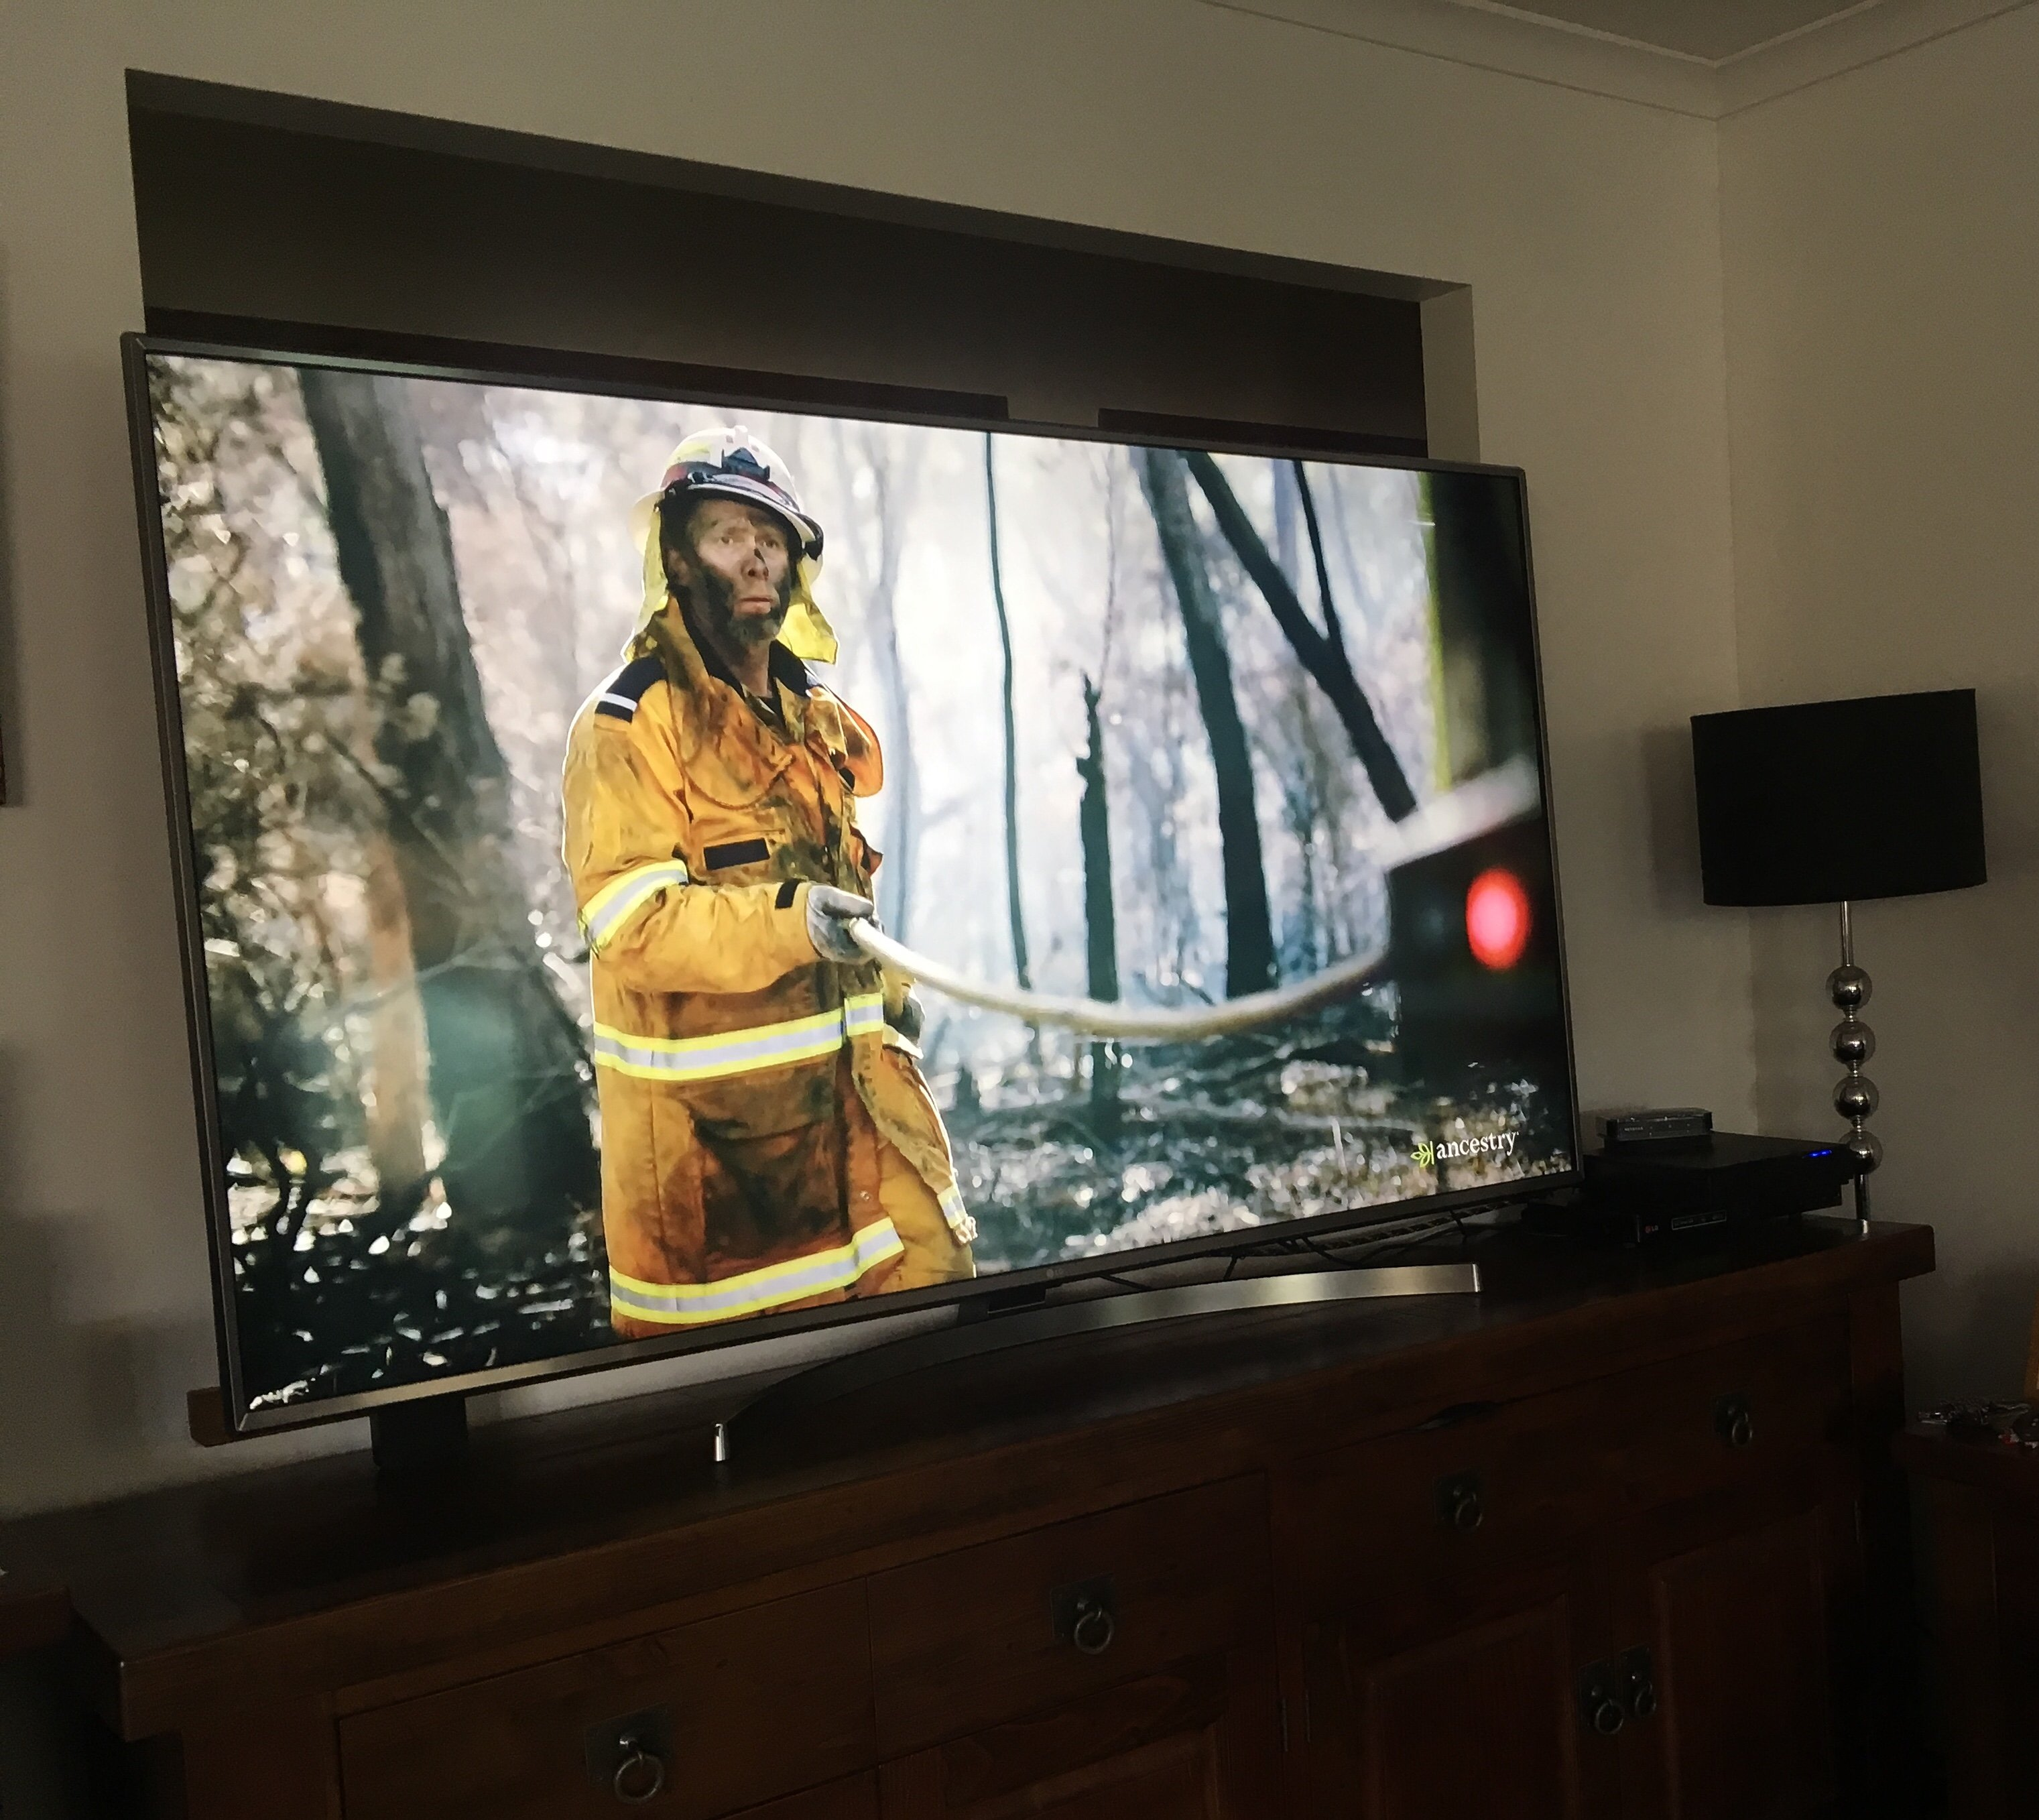 """Just purchased a new LG 70"""" TV - Televisions (Smart, UHD, 4K"""